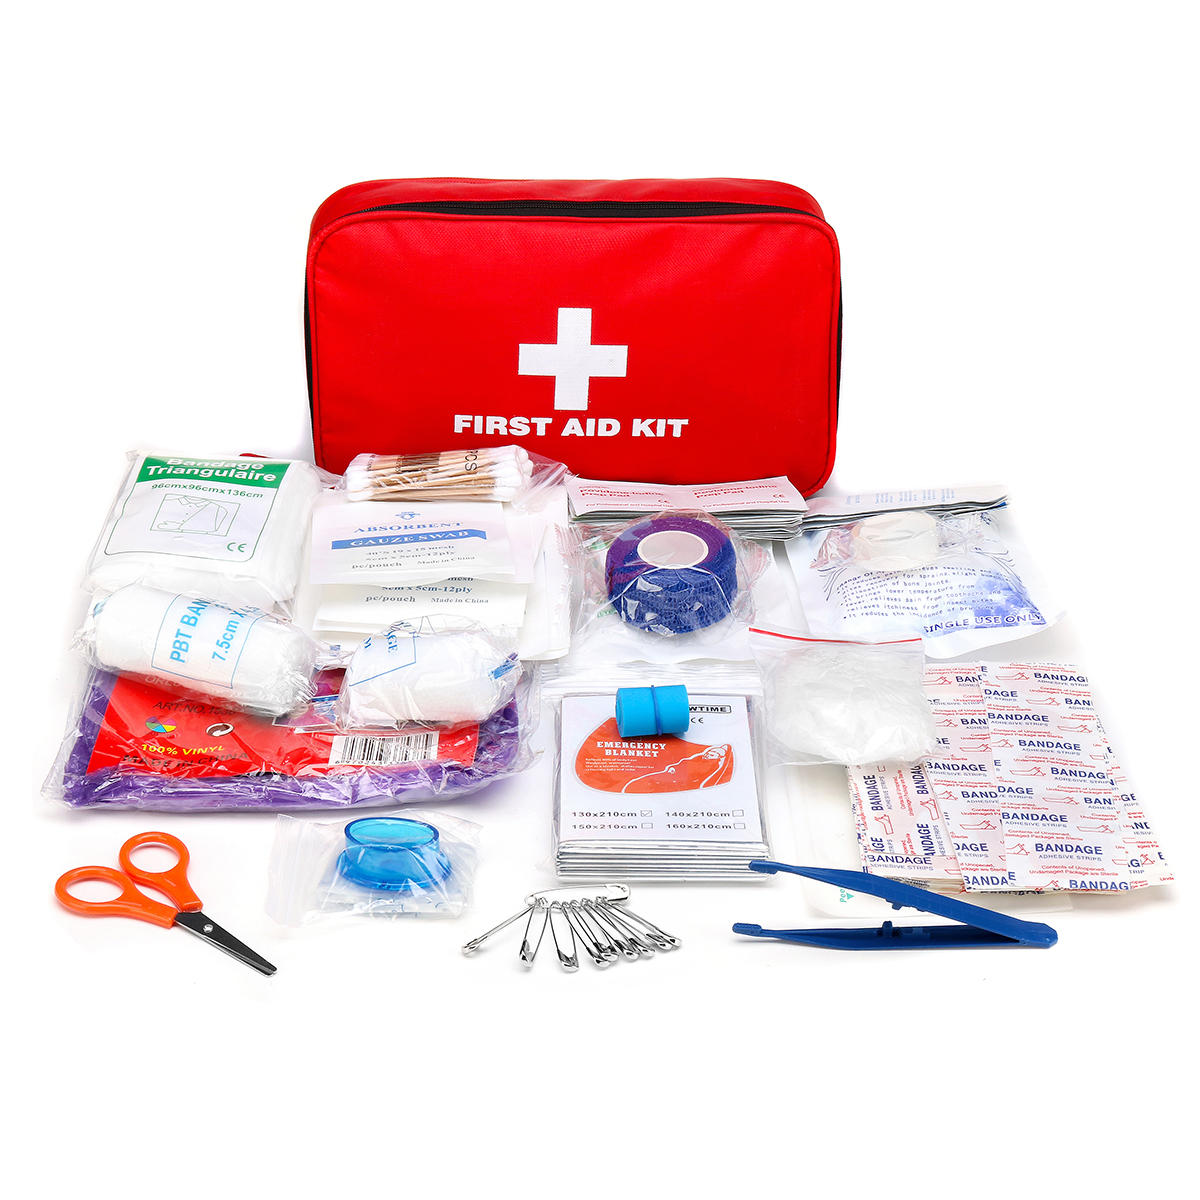 184Pcs First Aid Kit Safe Outdoor Wilderness Medical Emergency Survival Kit Trauma Bag Treatment Pack Set For Camping Hiking